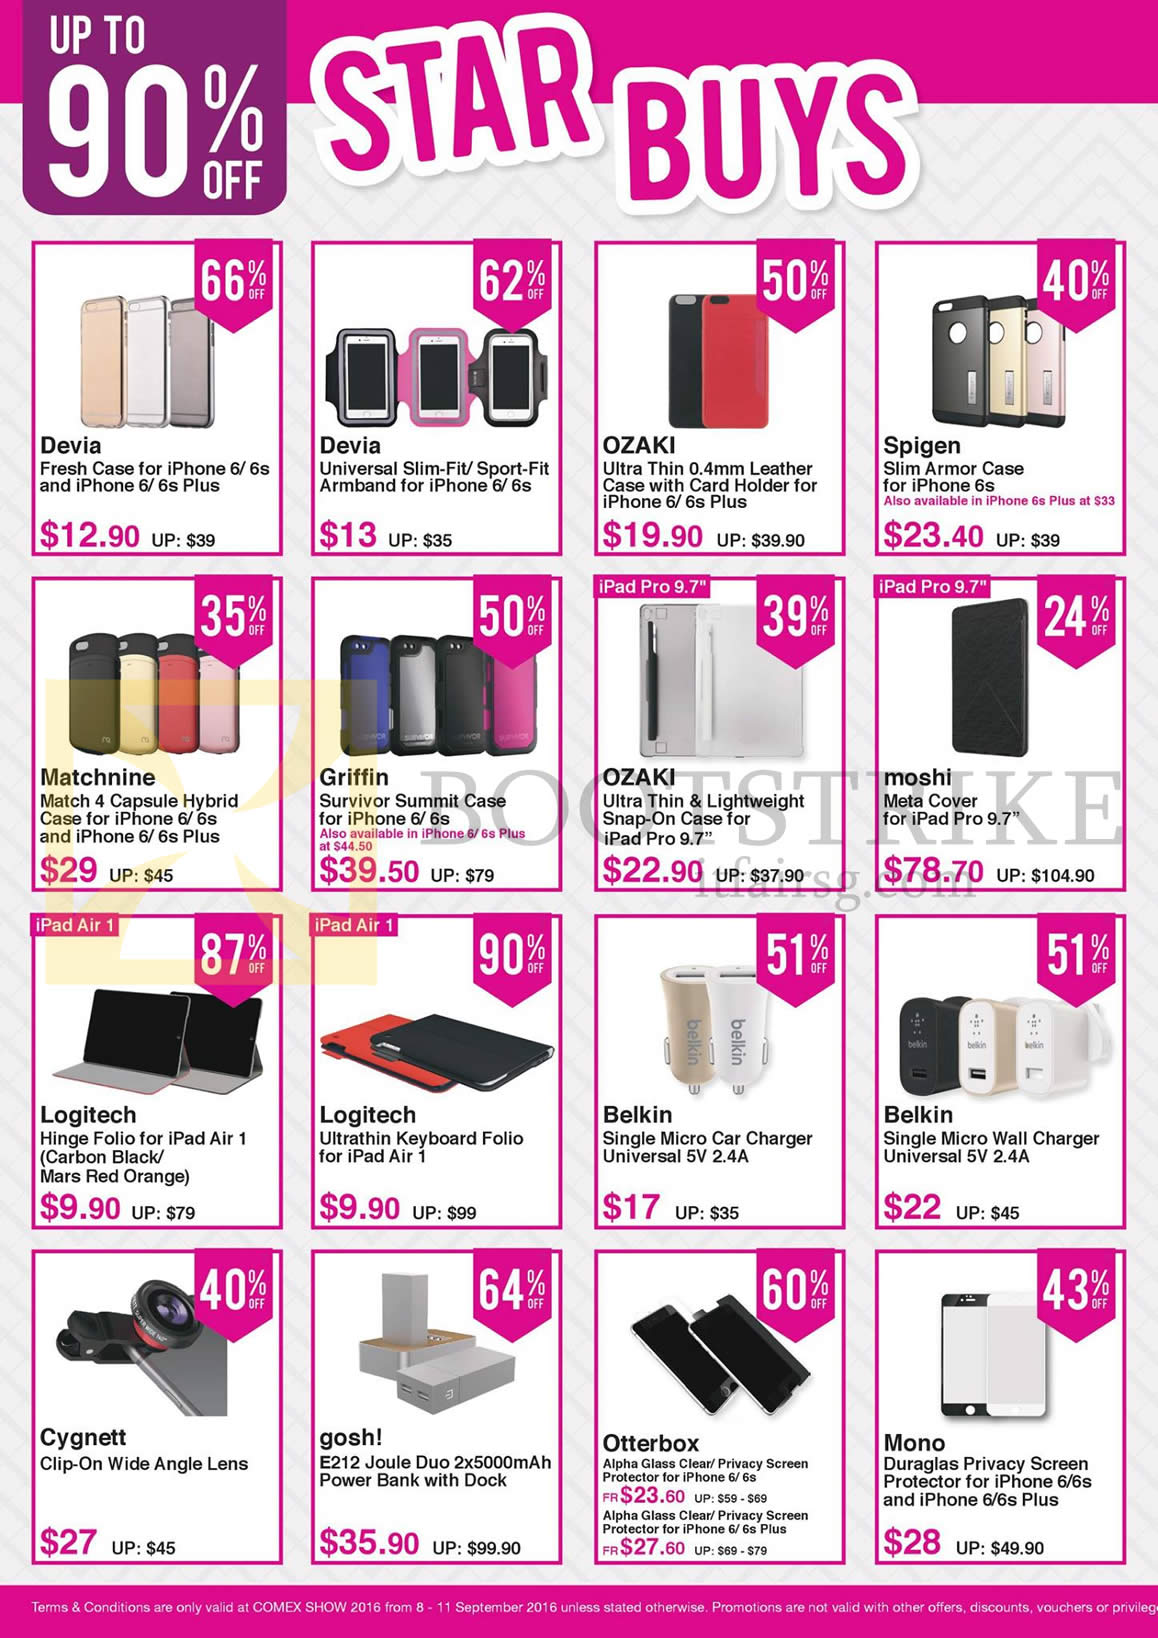 COMEX 2016 price list image brochure of Nubox Star Buys Accessories Cases, Universal Slim Fit, Leather Case, Meta Cover, Folio, Micro Car Charger, Wall Charger, Wide Angle Lens, PowerBank, Screen Protector